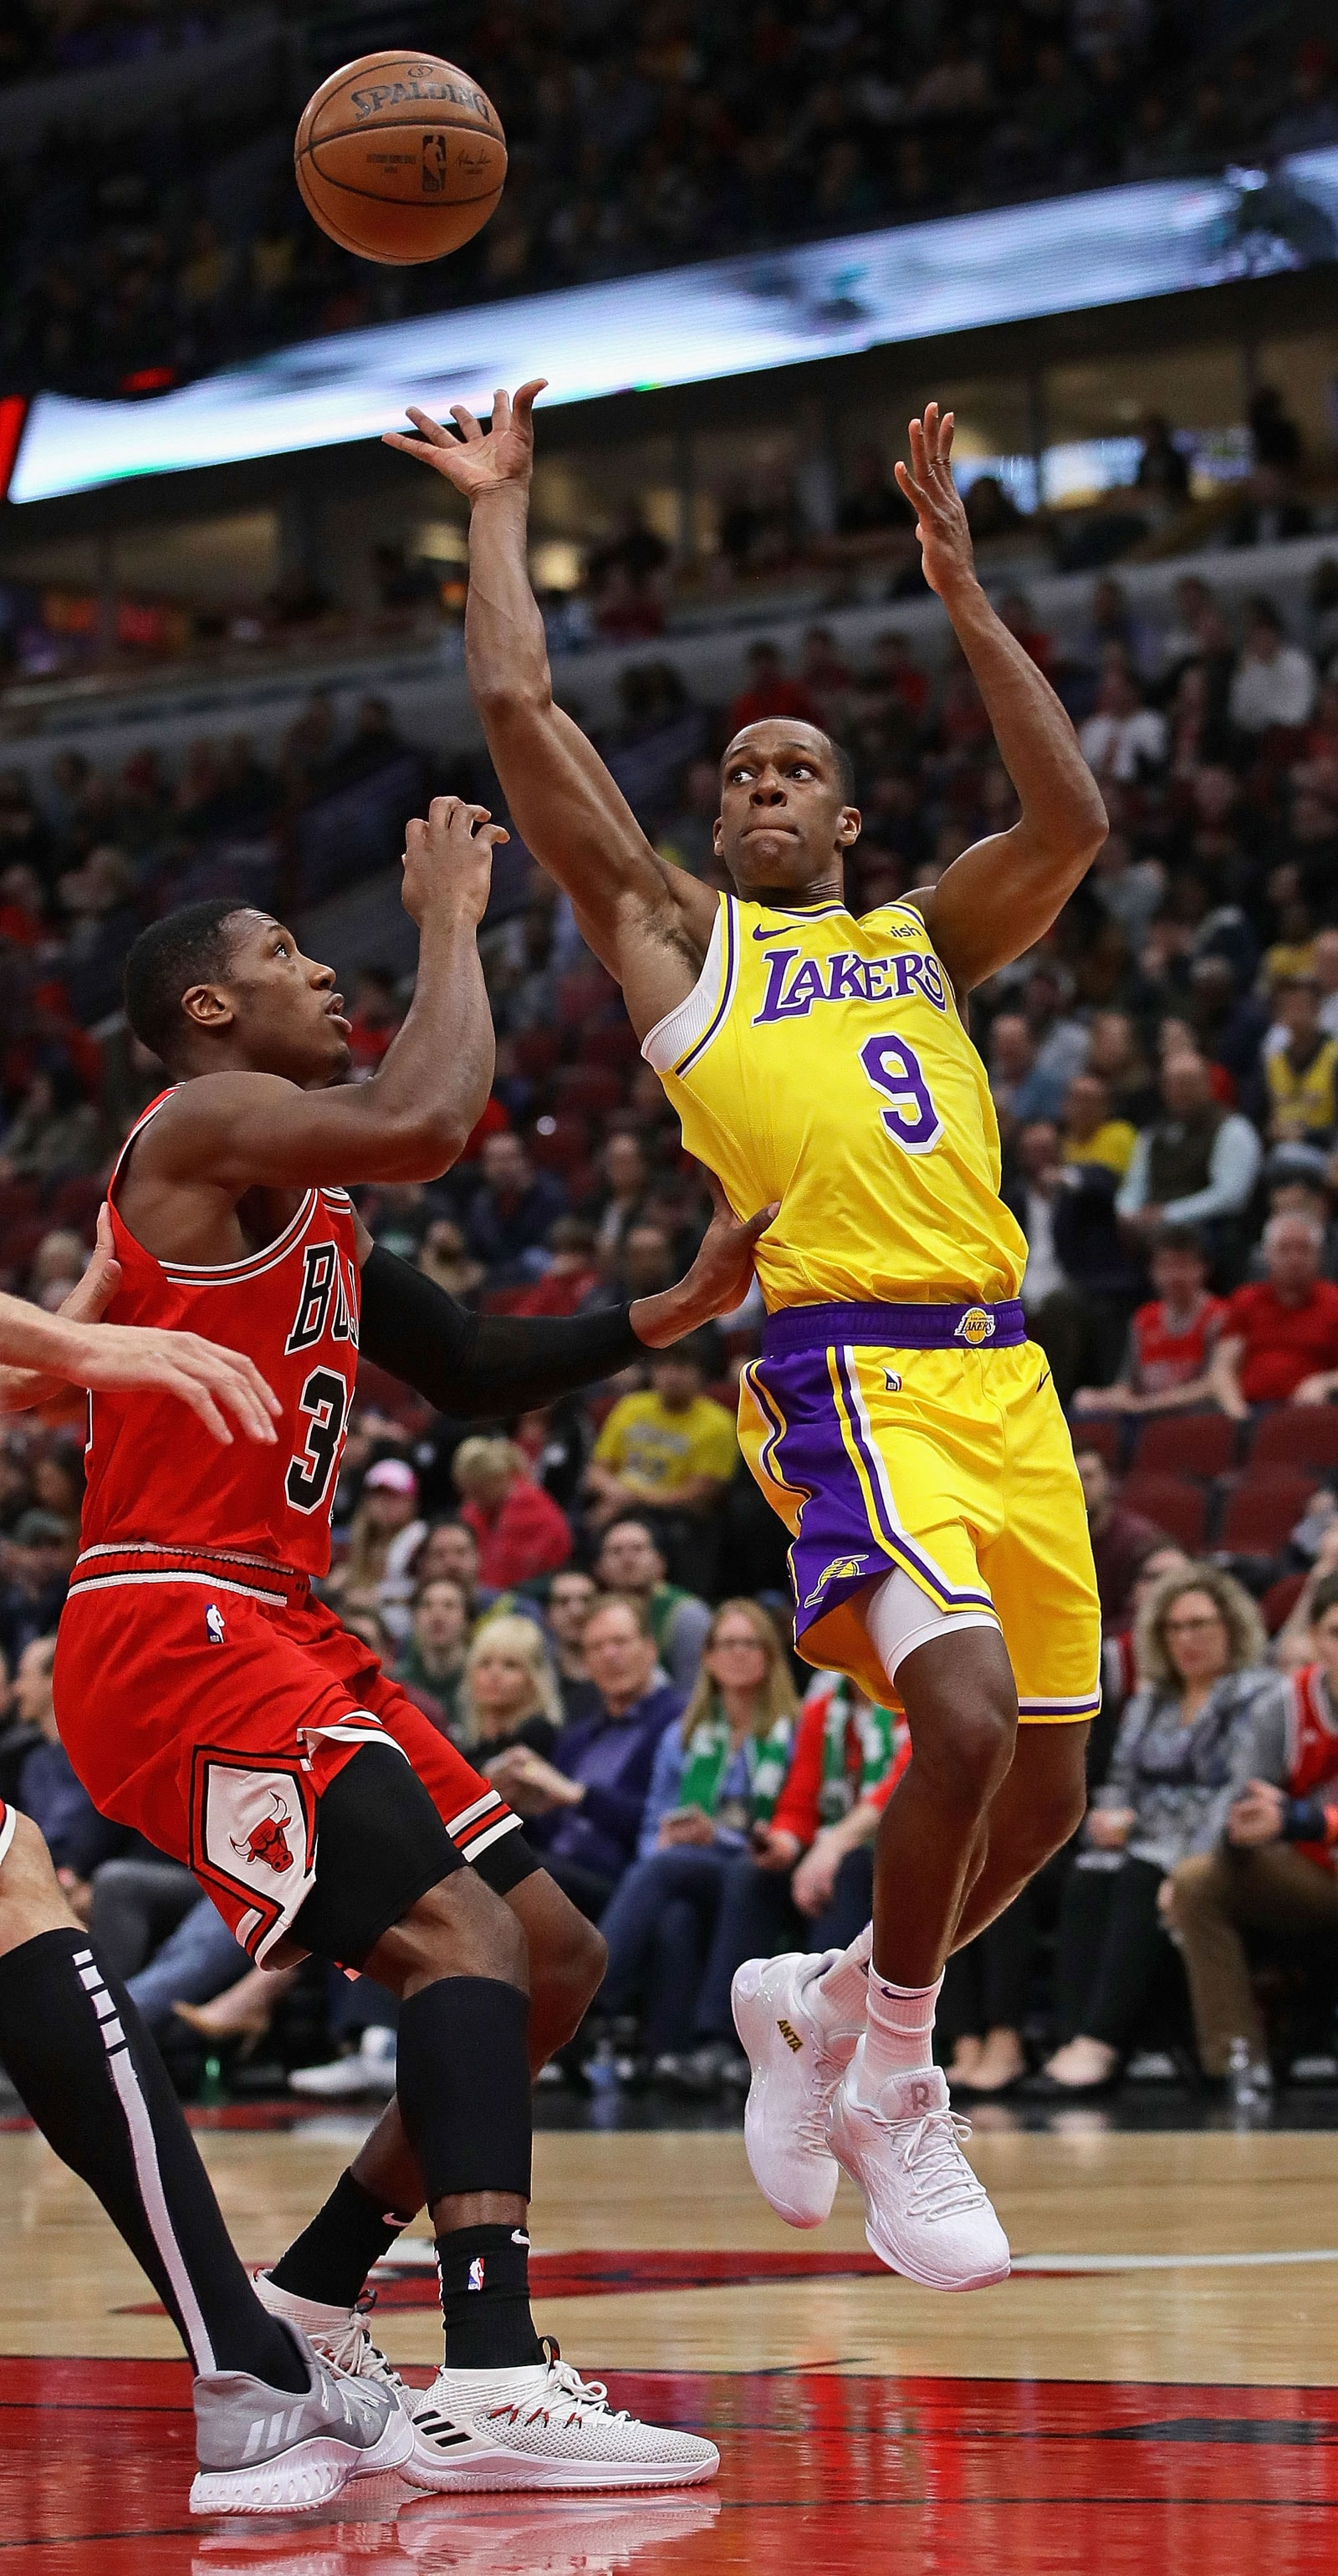 Rajon Rondo #9 of the Los Angeles Lakers lofts a pass over Kris Dunn #32 of the Chicago Bulls at the United Center on March 12, 2019 in Chicago, Illinois.